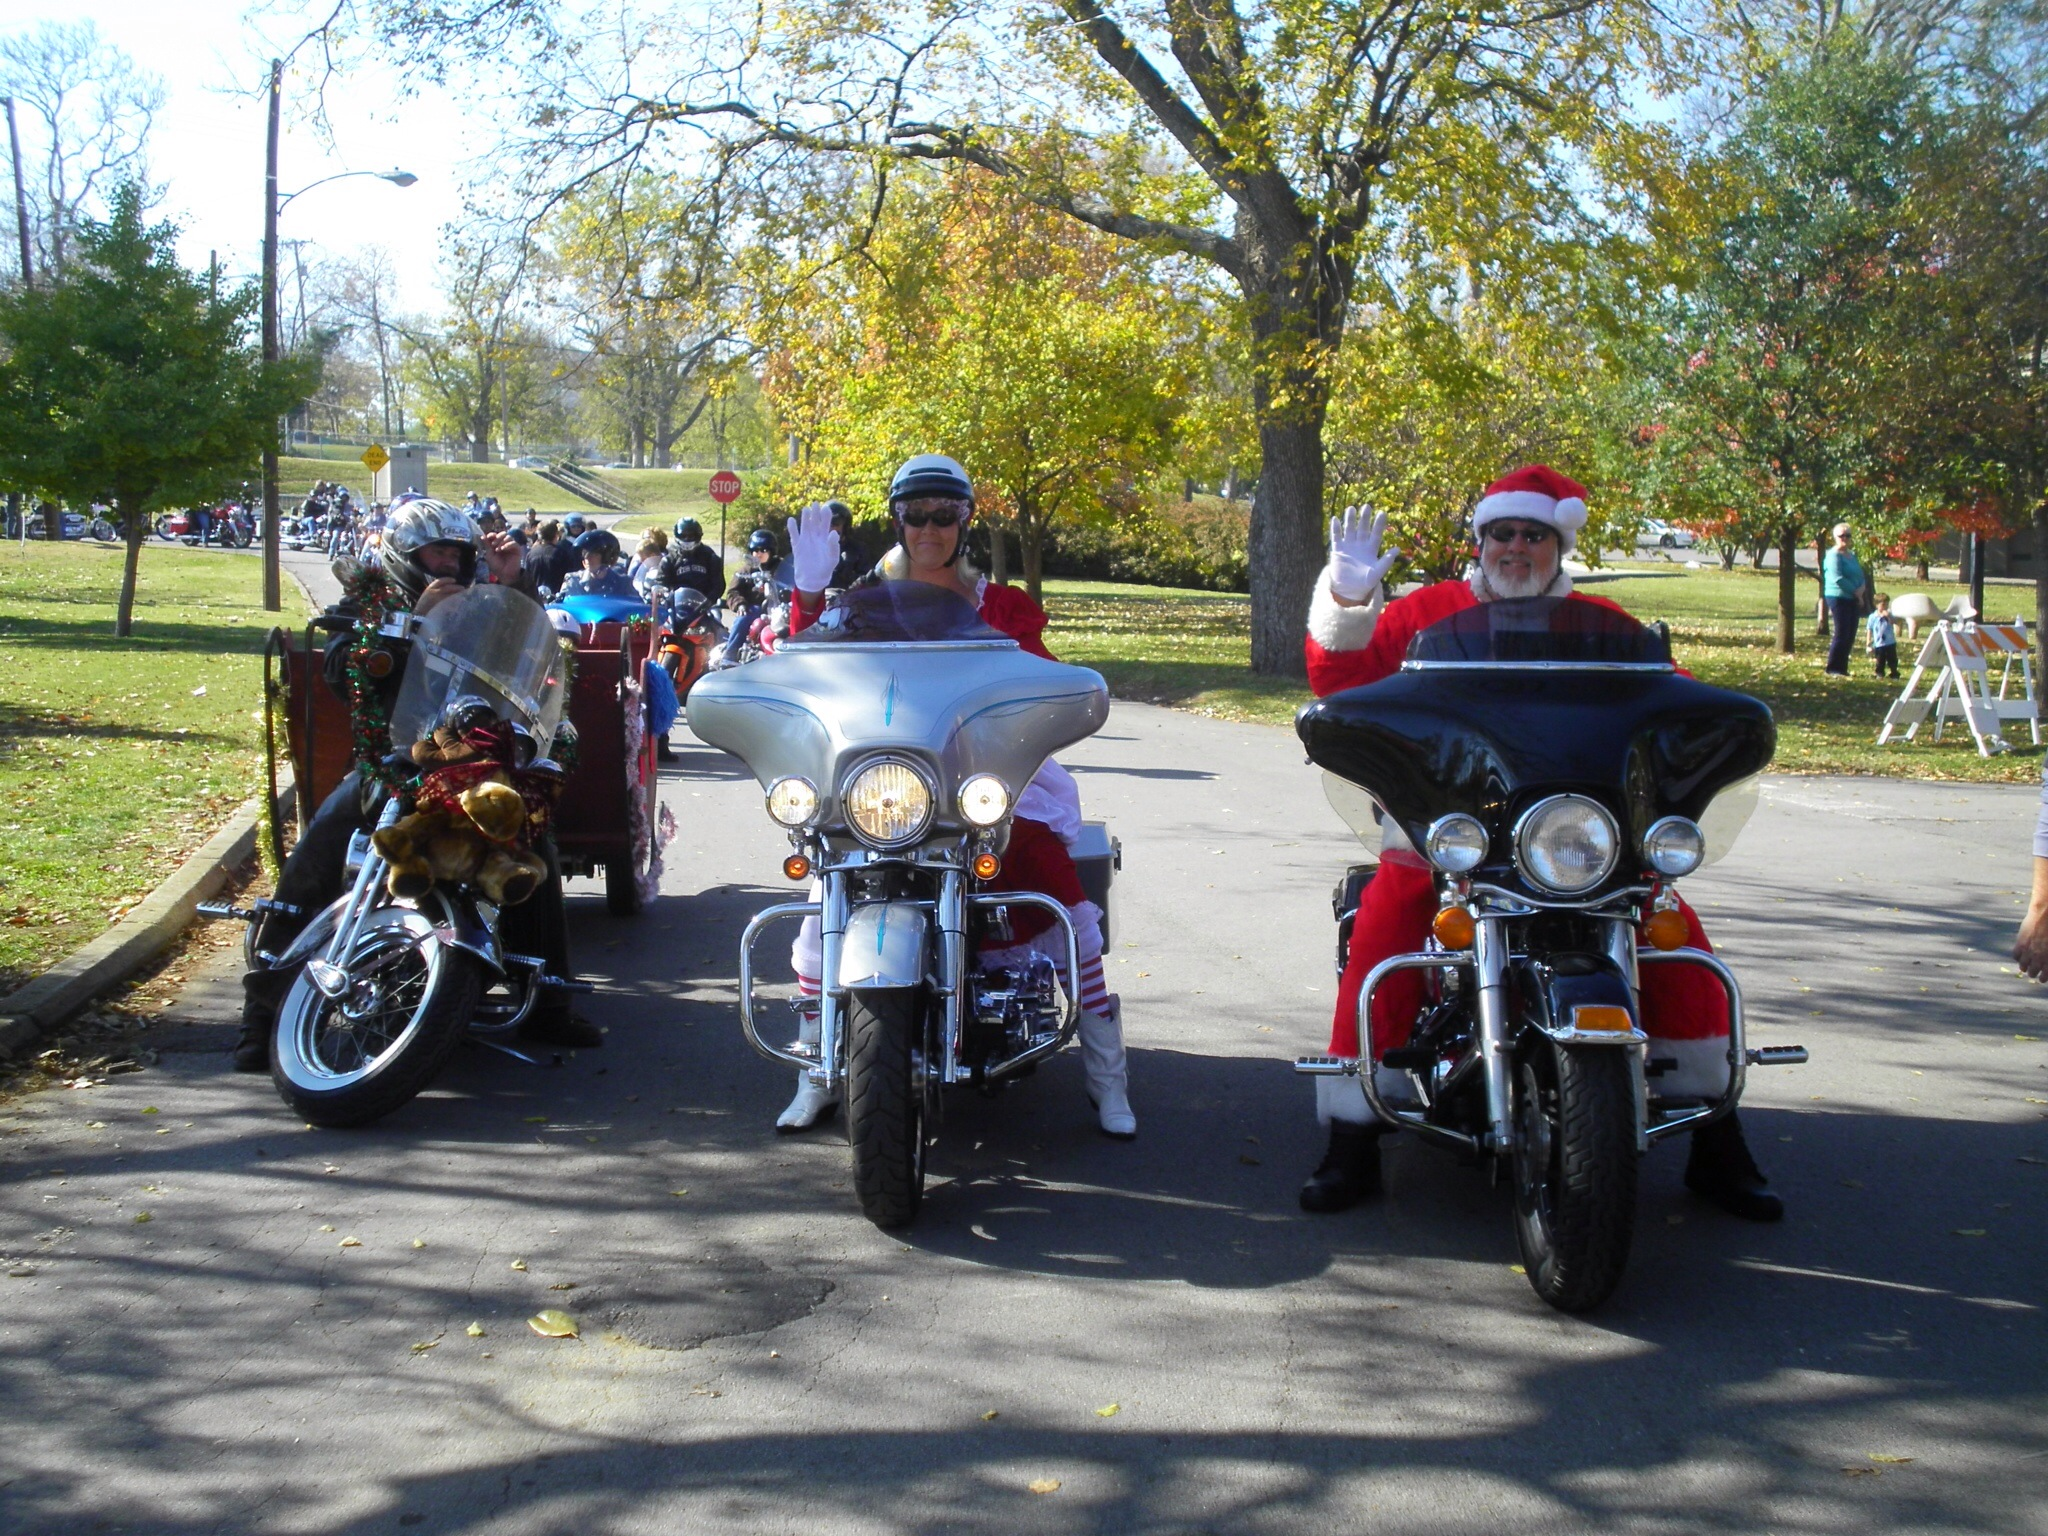 An estimated 50,000 to 80,000 people are expected to line the streets at this year's Nashville Christmas Parade.    - photos submitted